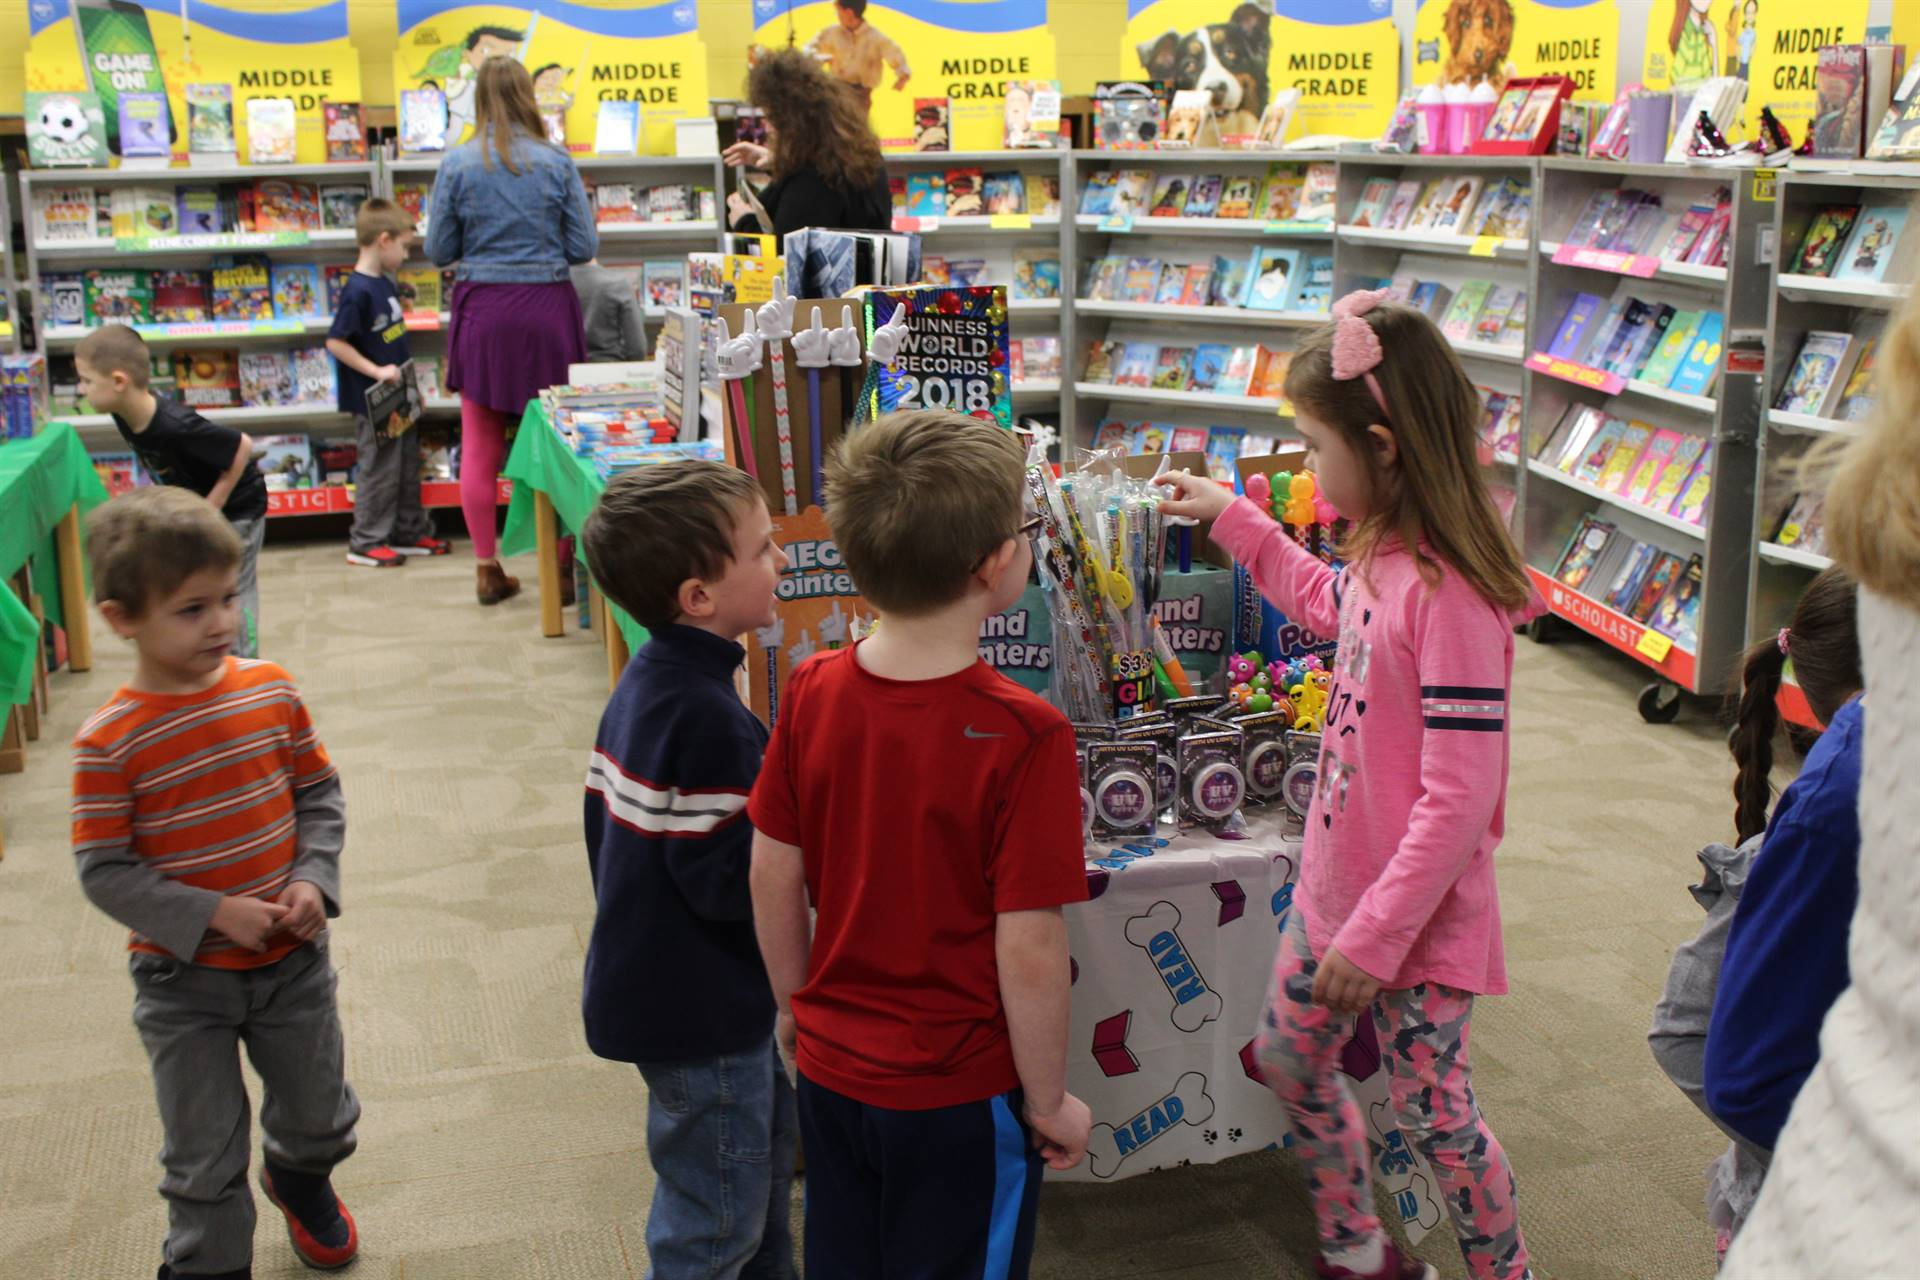 Students looking at items at the book fair